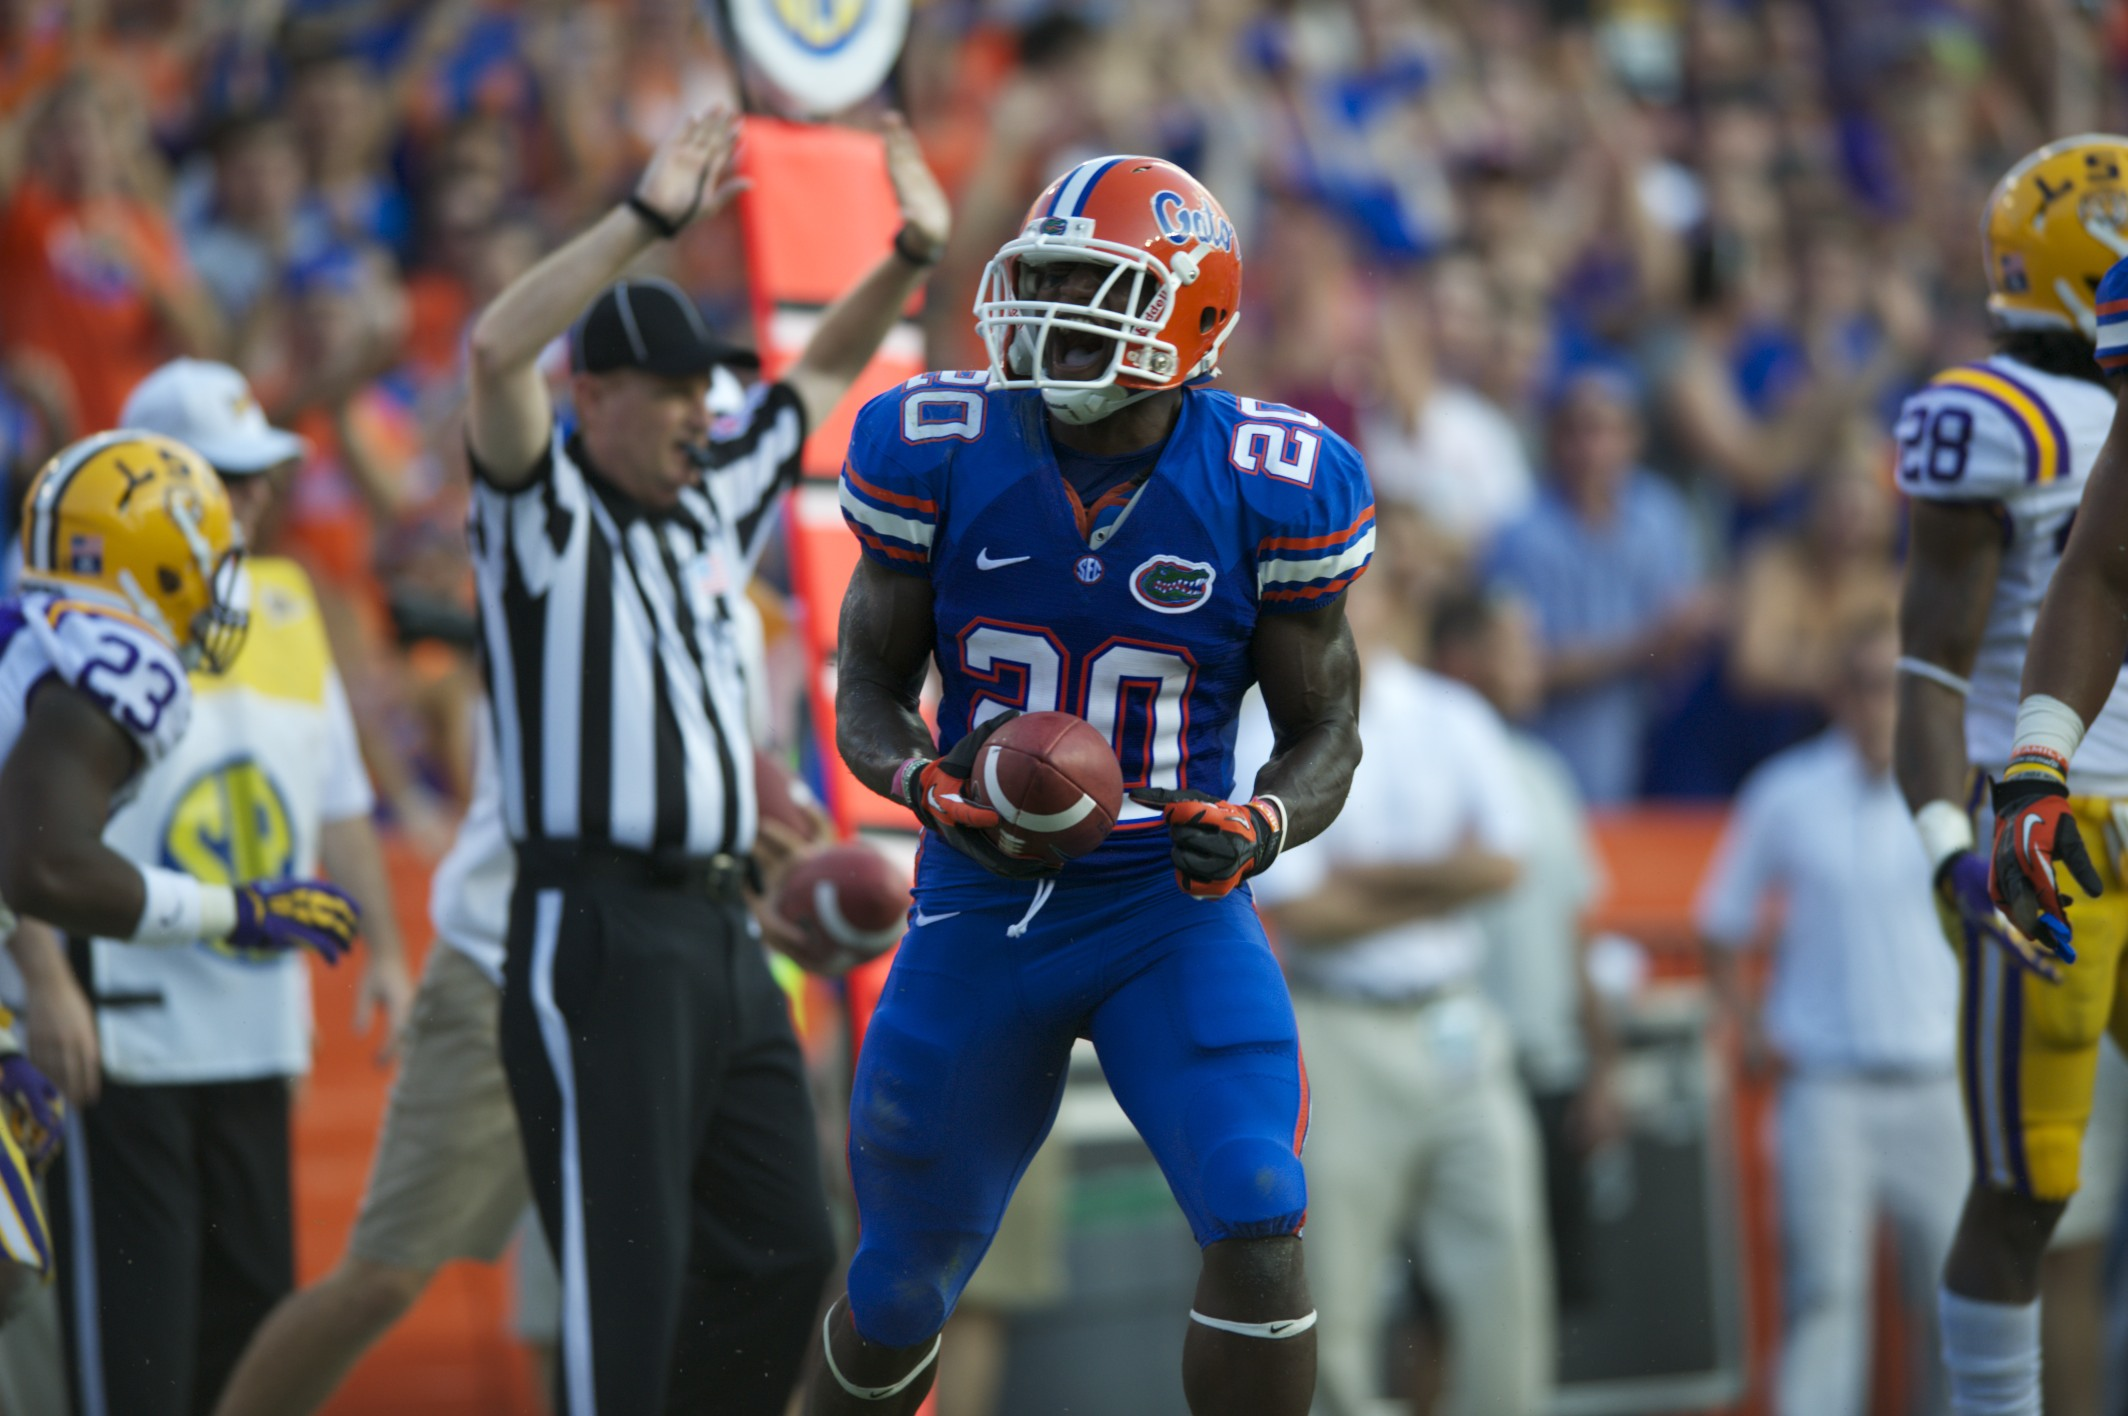 Marcus Maye celebrates after a Florida first down.